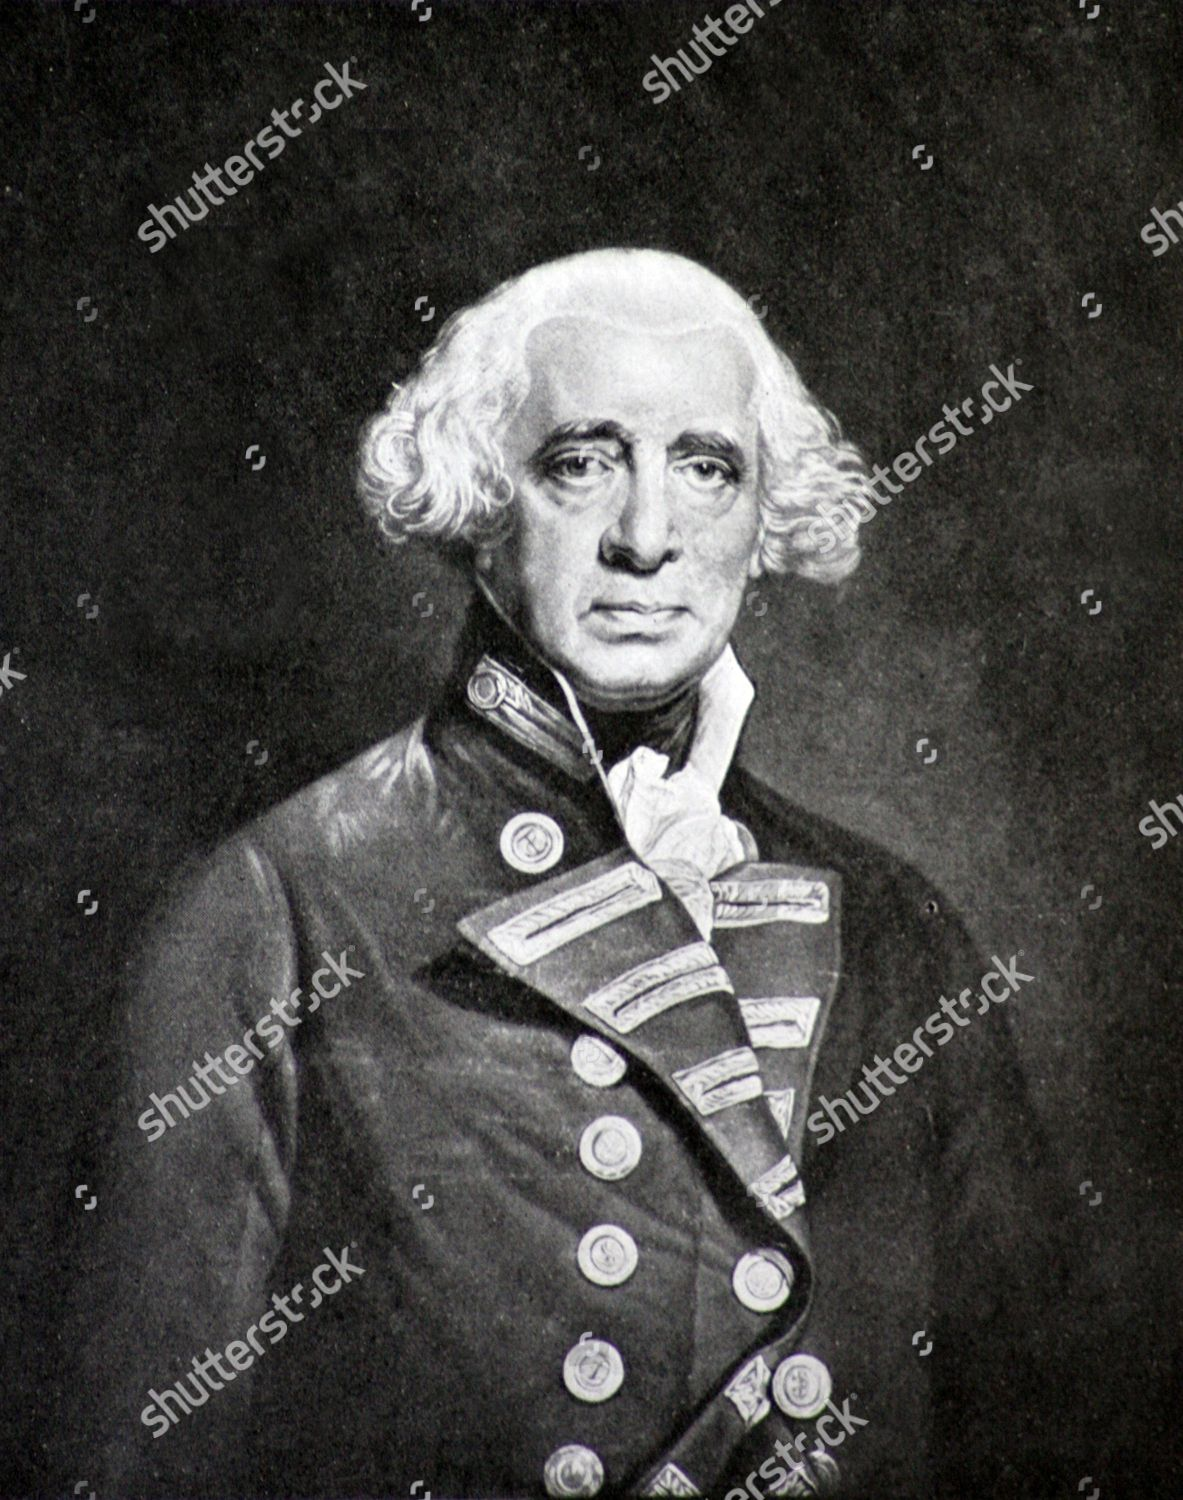 Something also admiral black dick howe are